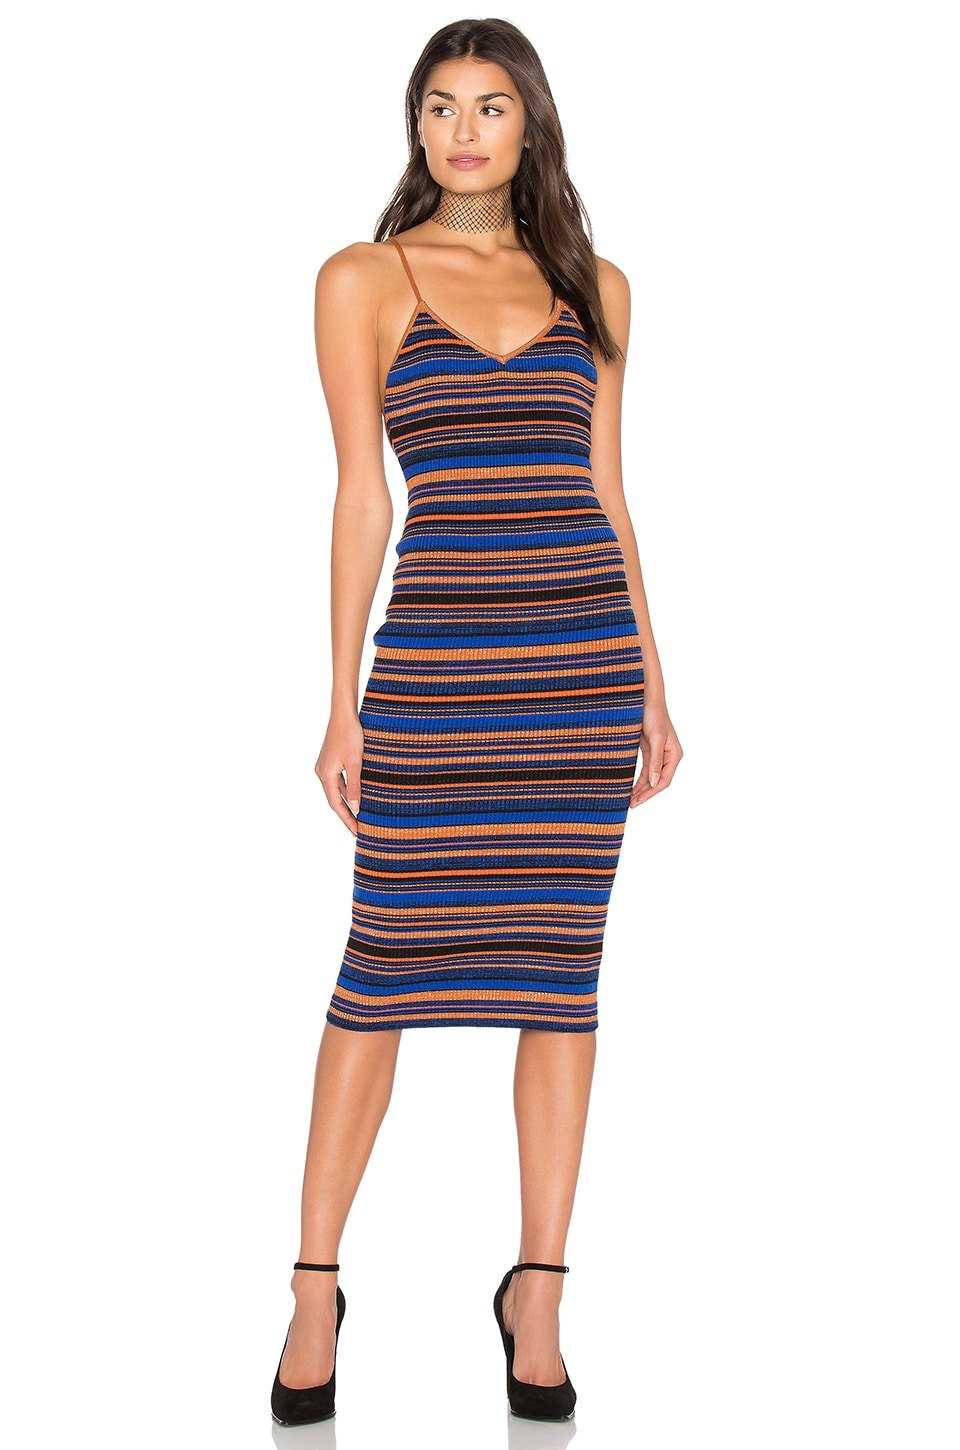 MAJORELLE Allison Dress in Stripe